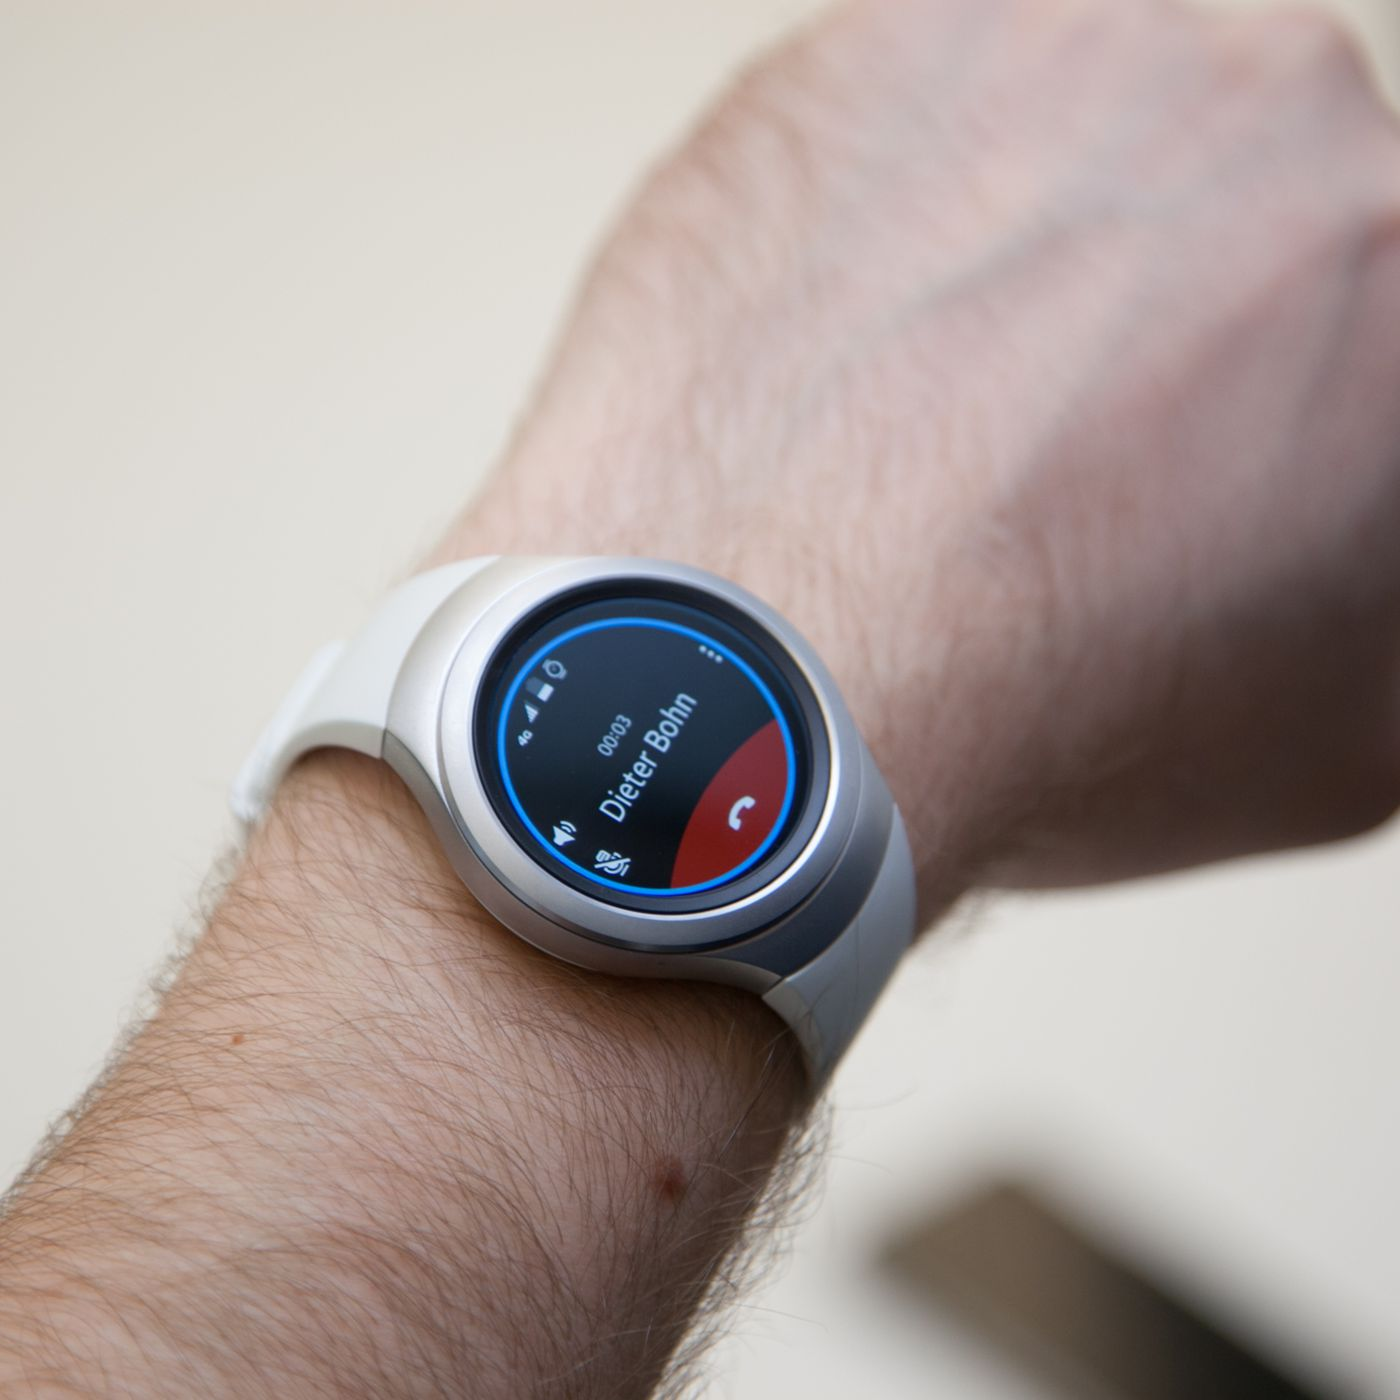 Samsung's Gear S2 3G is a look at our untethered future